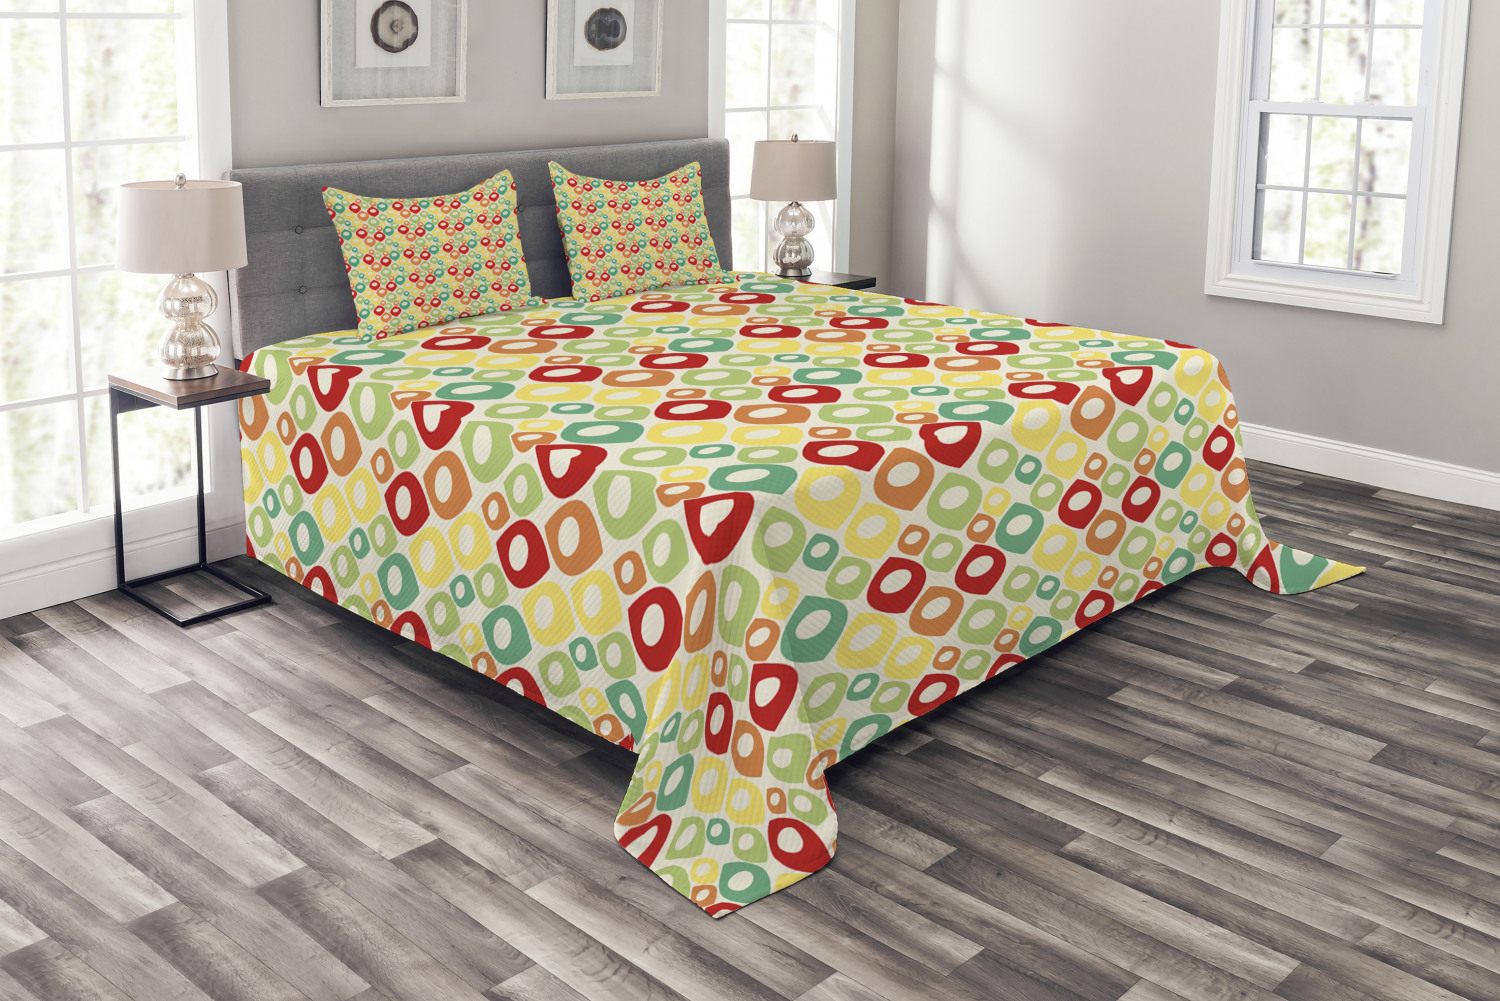 Abstract Quilted Bedspread Pillow Shams Set Geometrical Shapes - Geometrical-shapes-on-bedding